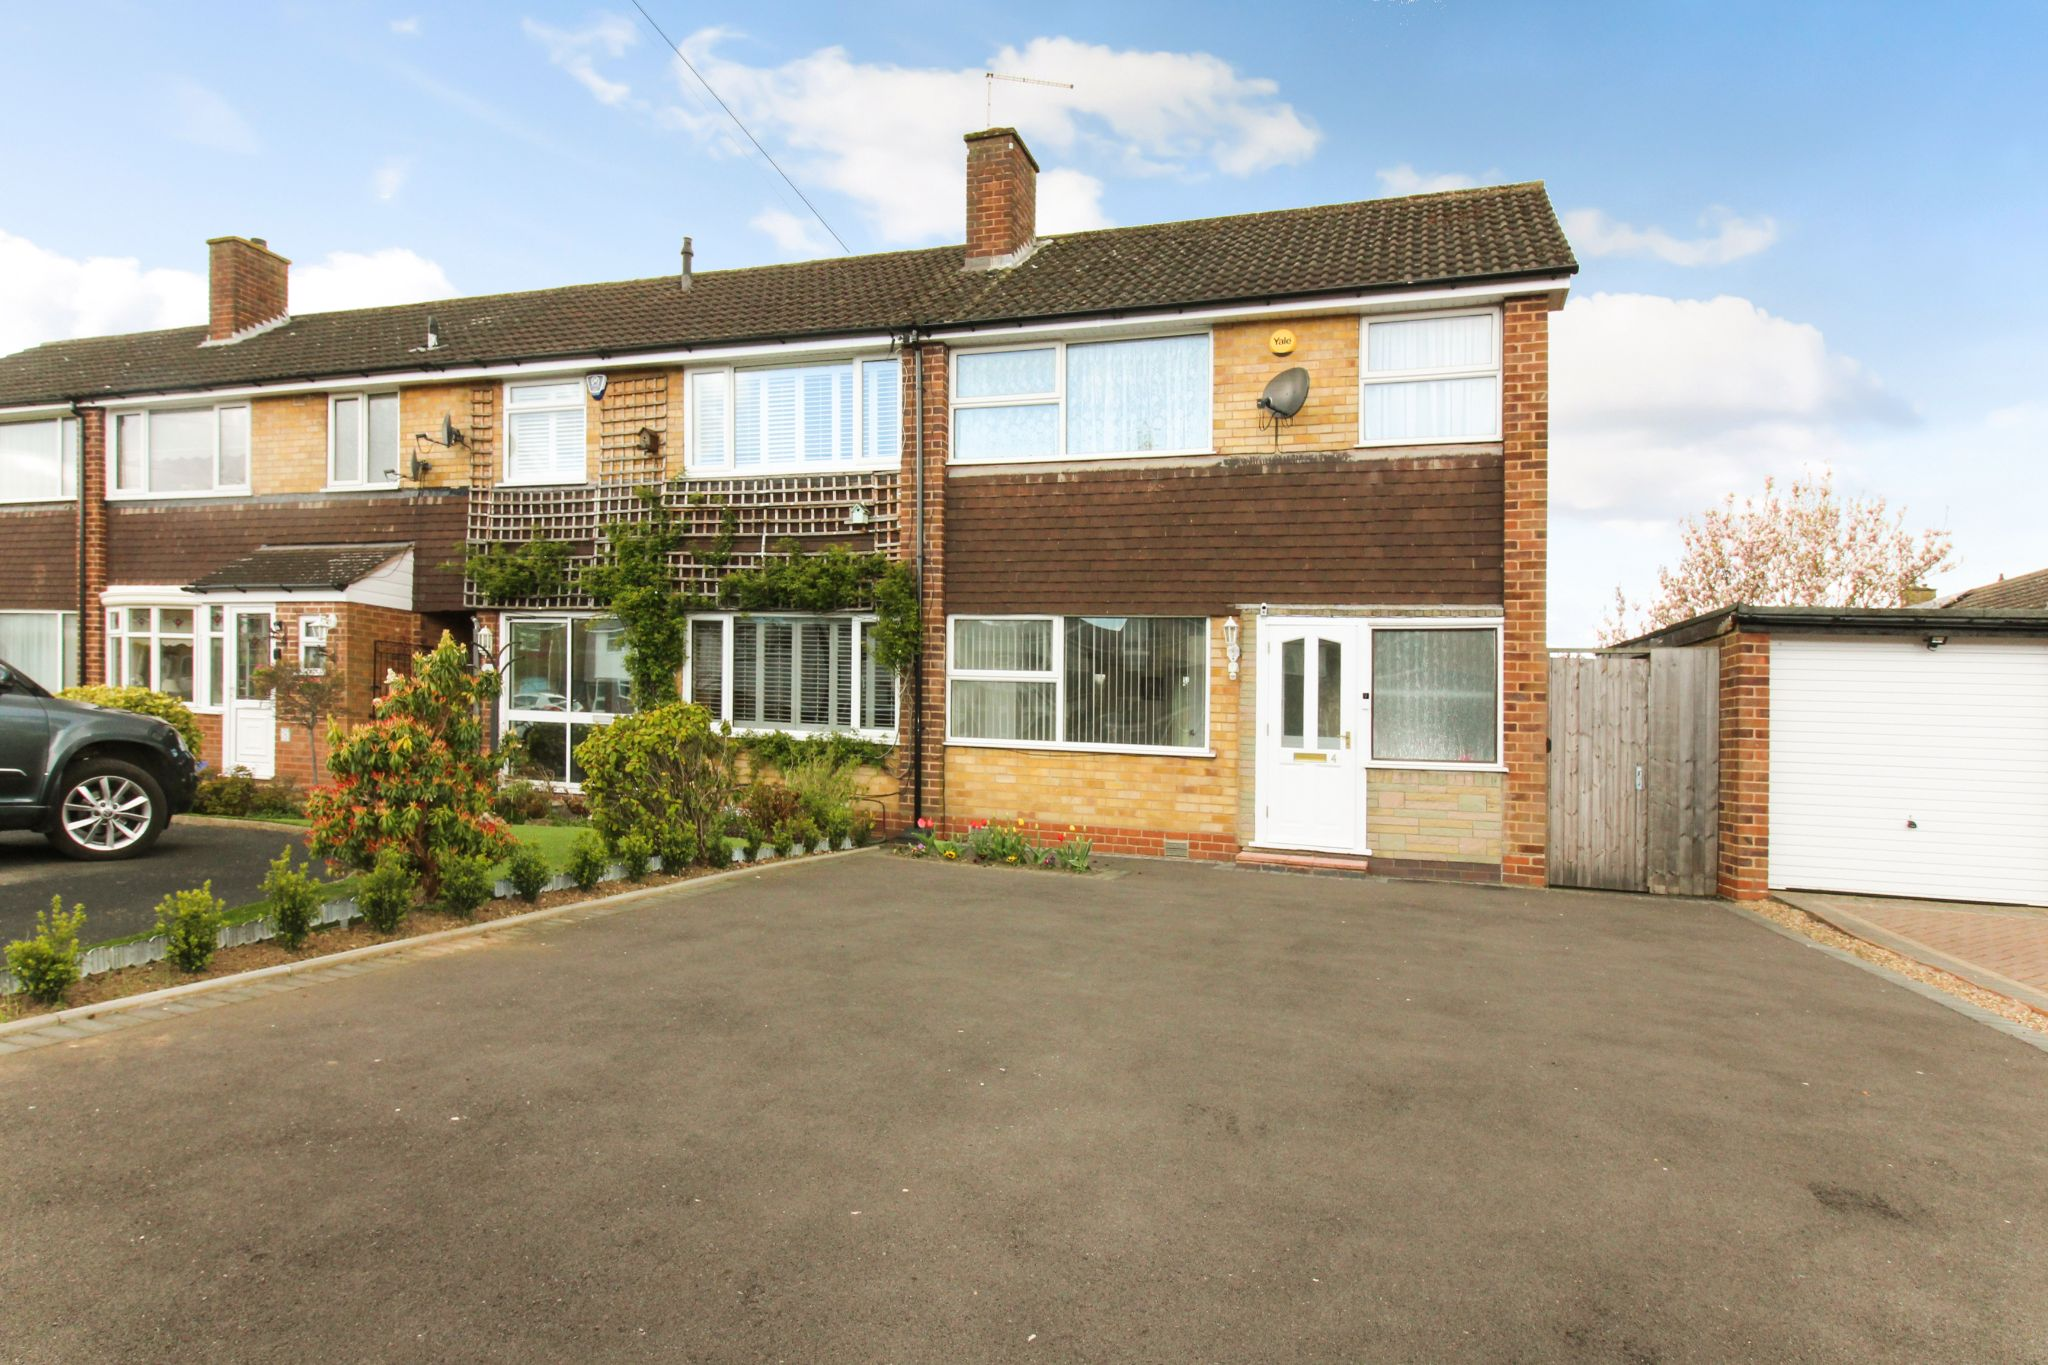 3 bedroom end terraced house To Let in Solihull - Photograph 1.